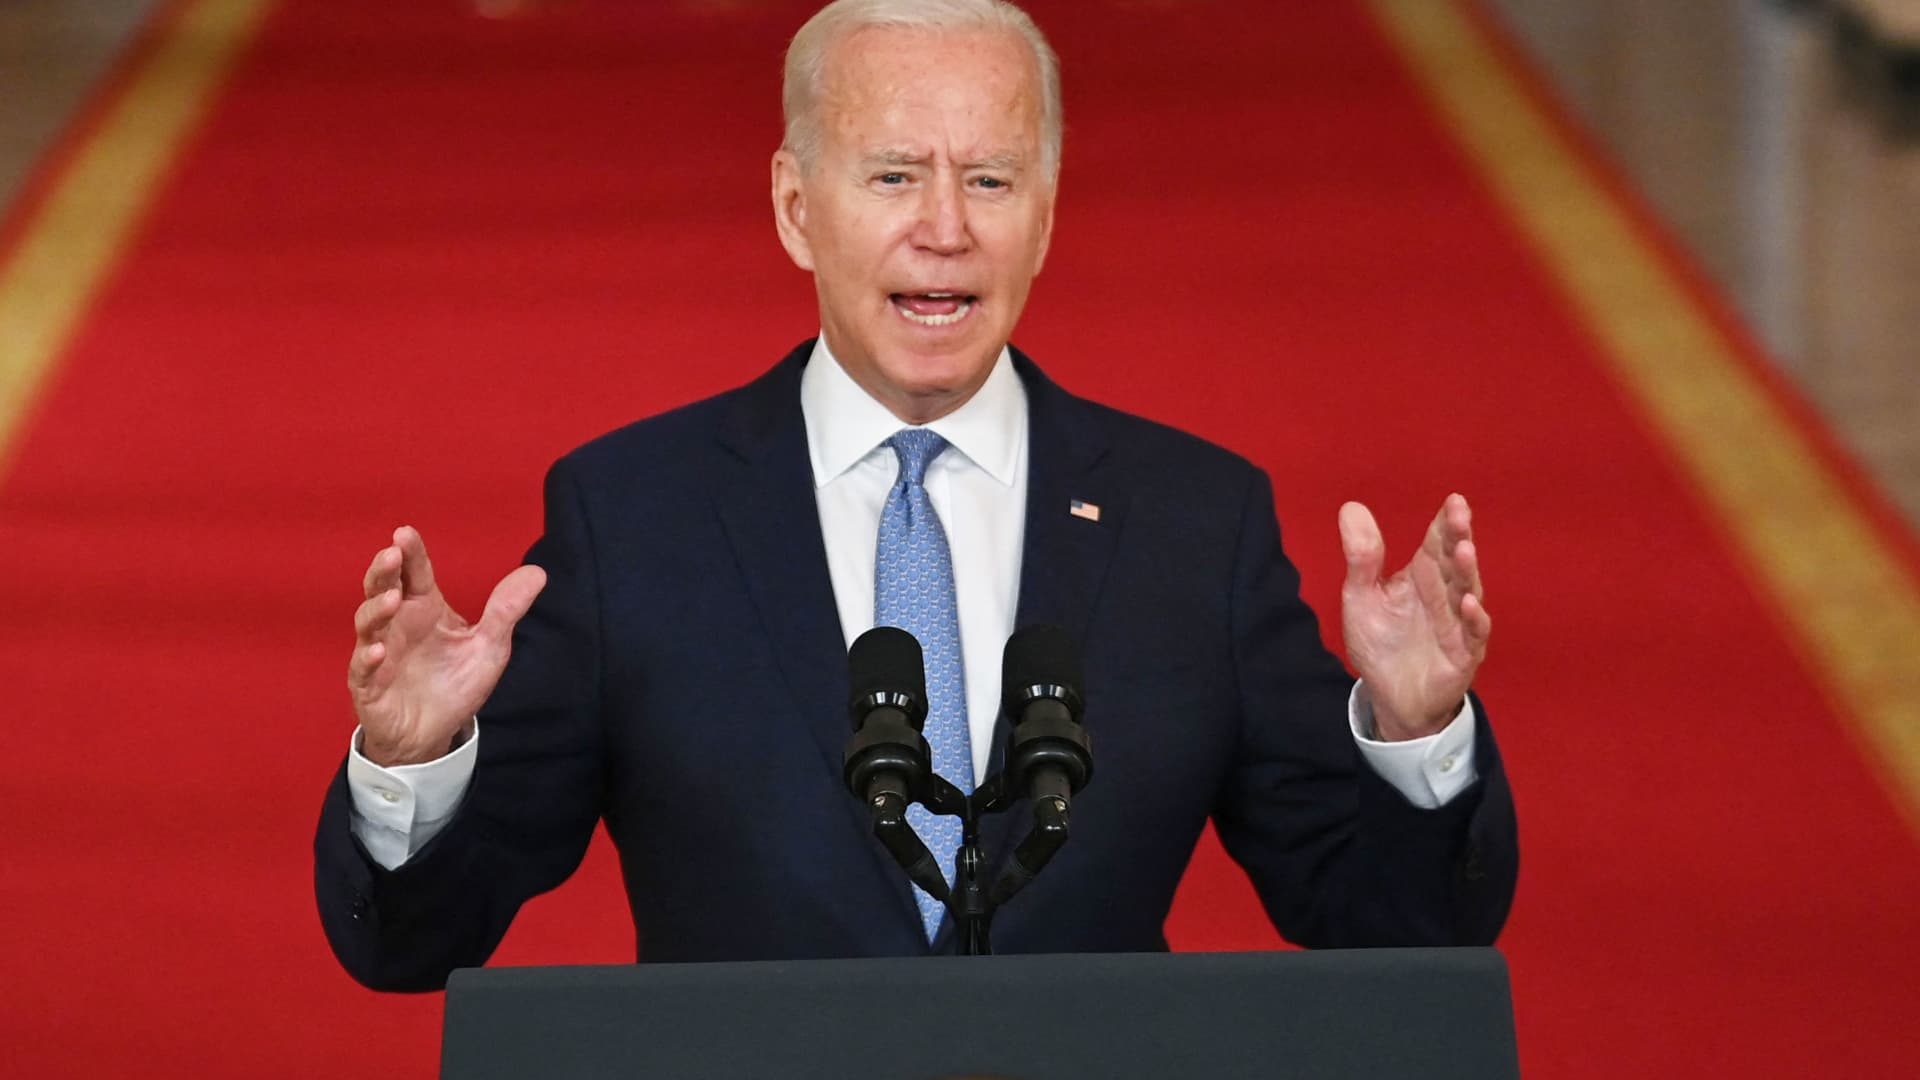 US President Joe Biden speaks on ending the war in Afghanistan in the State Dining Room at the White House in Washington, DC, on August 31, 2021.